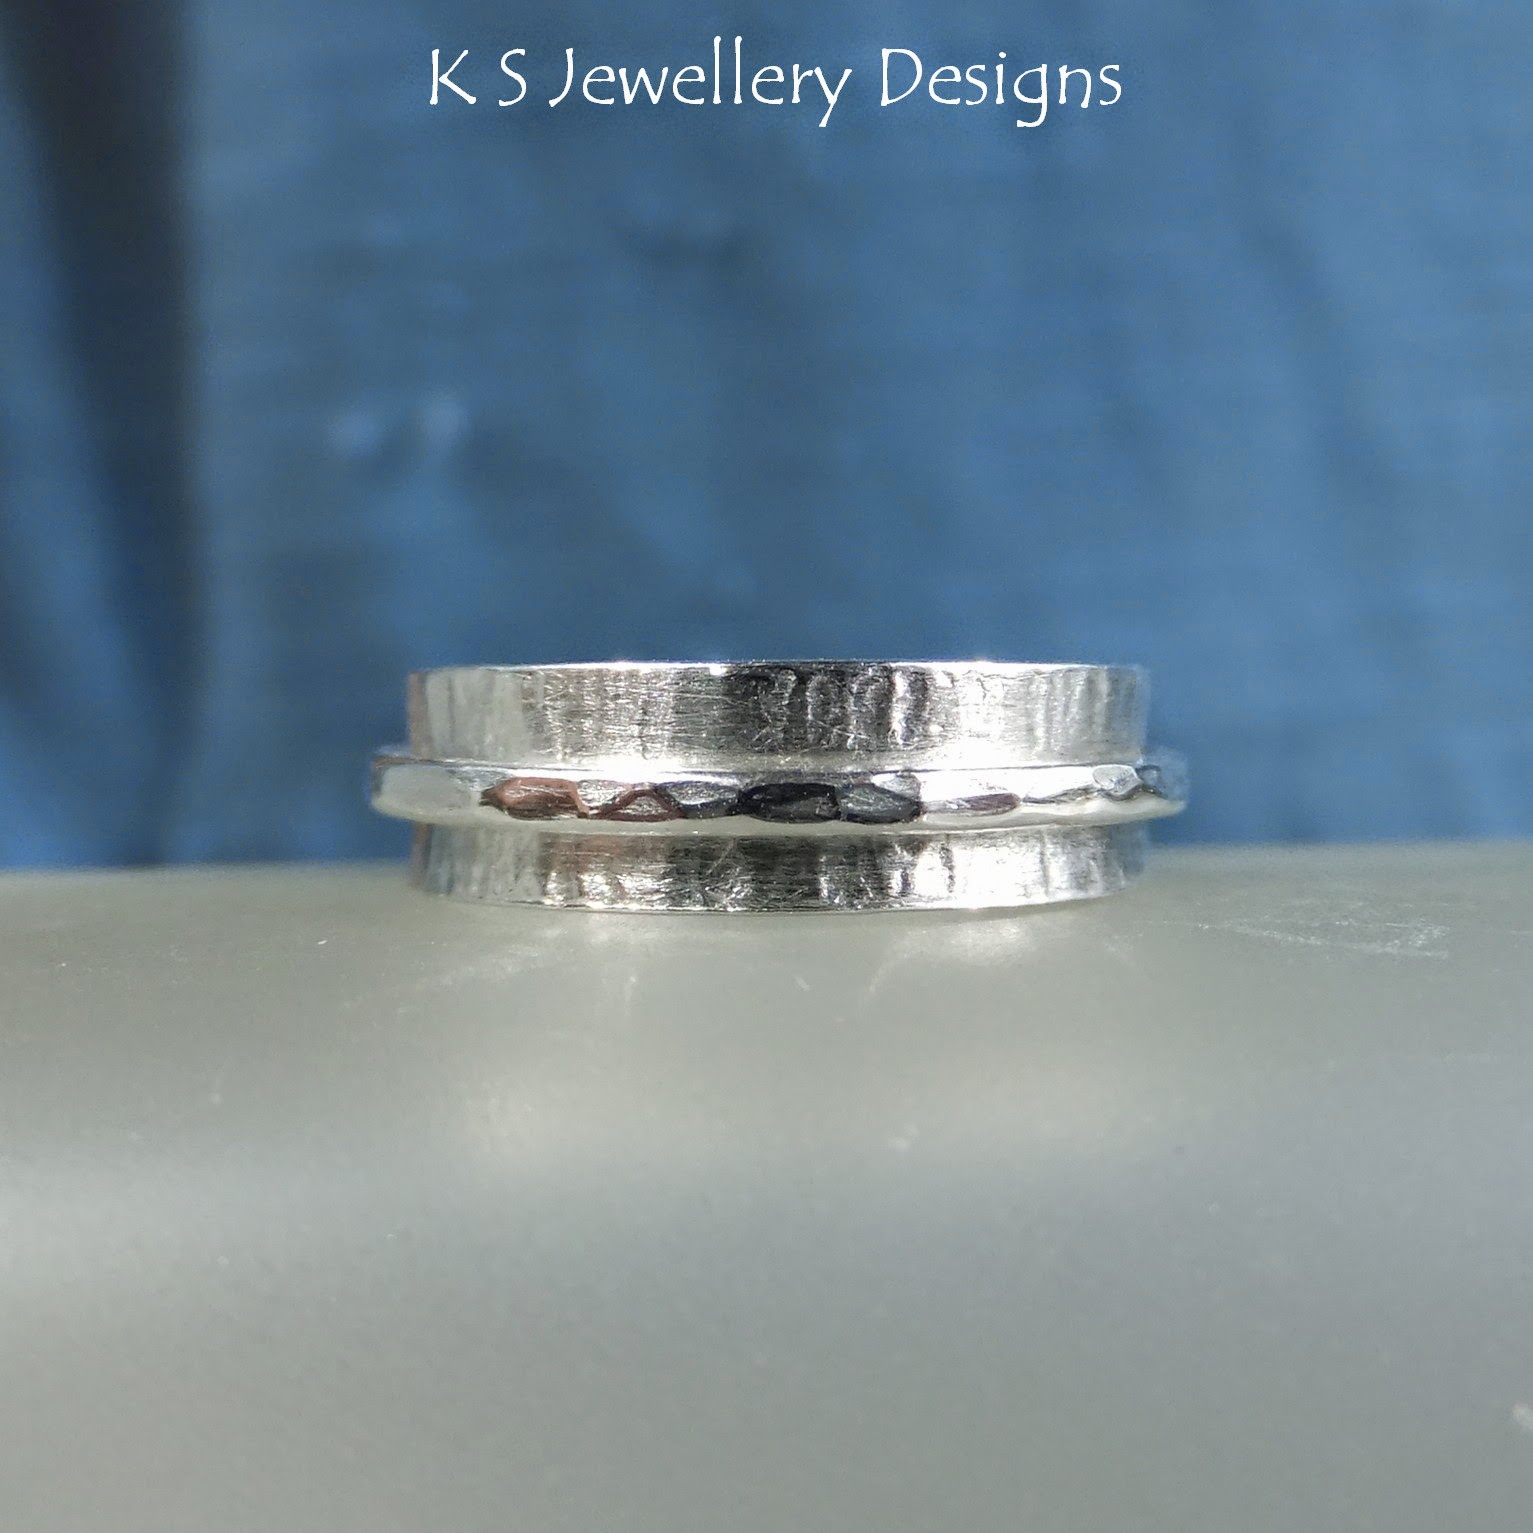 http://ksjewellerydesigns.co.uk/ourshop/prod_3130563-Sterling-Silver-Spinner-Ring-Bark-Texture-MADE-TO-ORDER.html